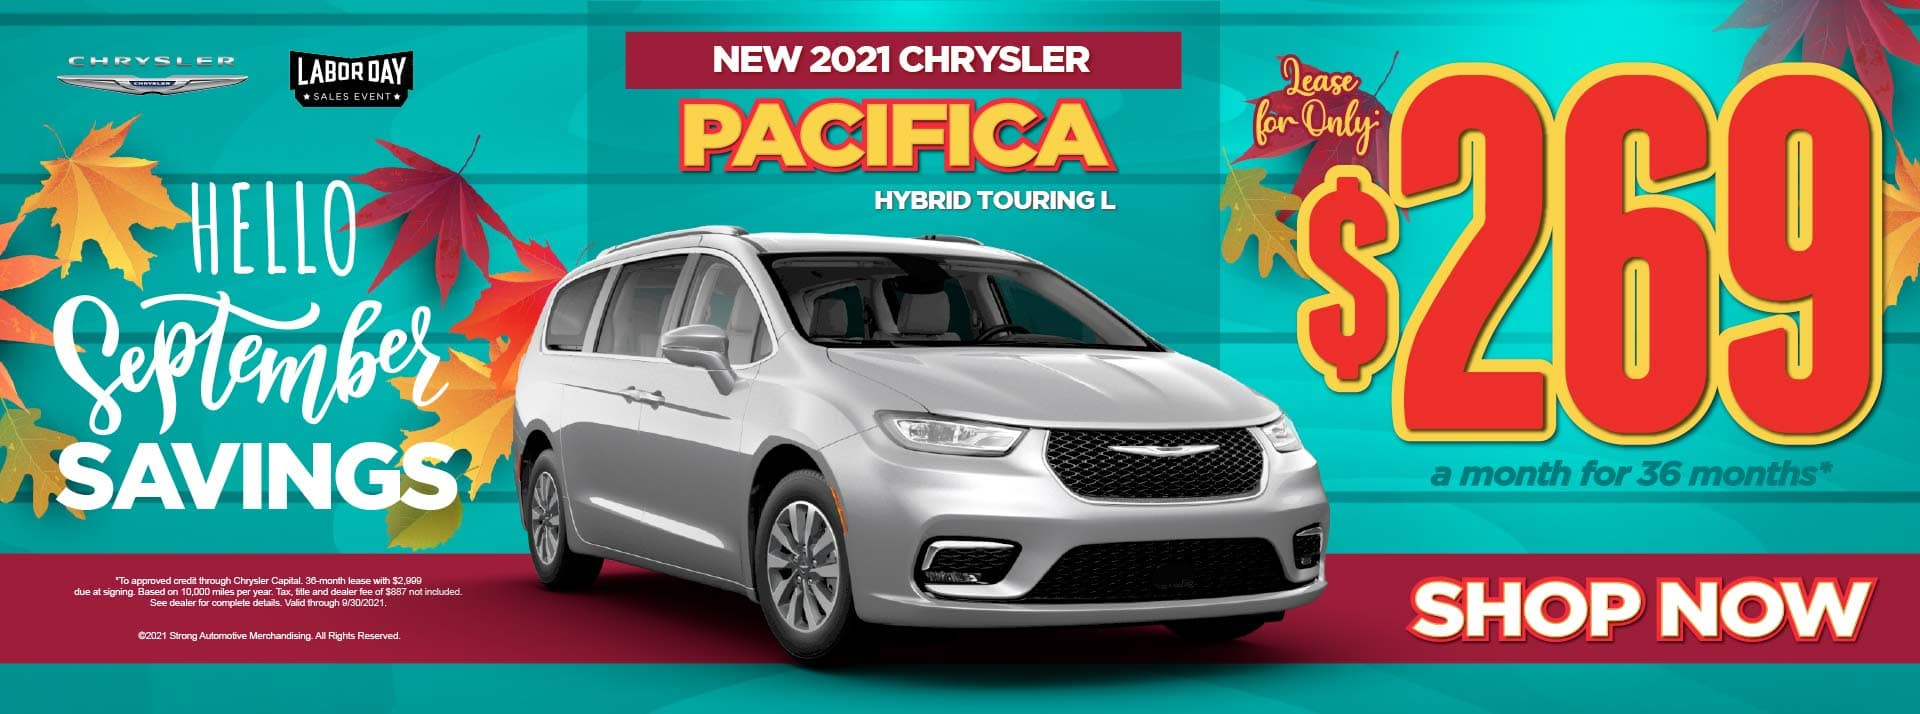 New 2021 Chrysler Pacifica Hybrid Touring L - $269 / mo ACT NOW